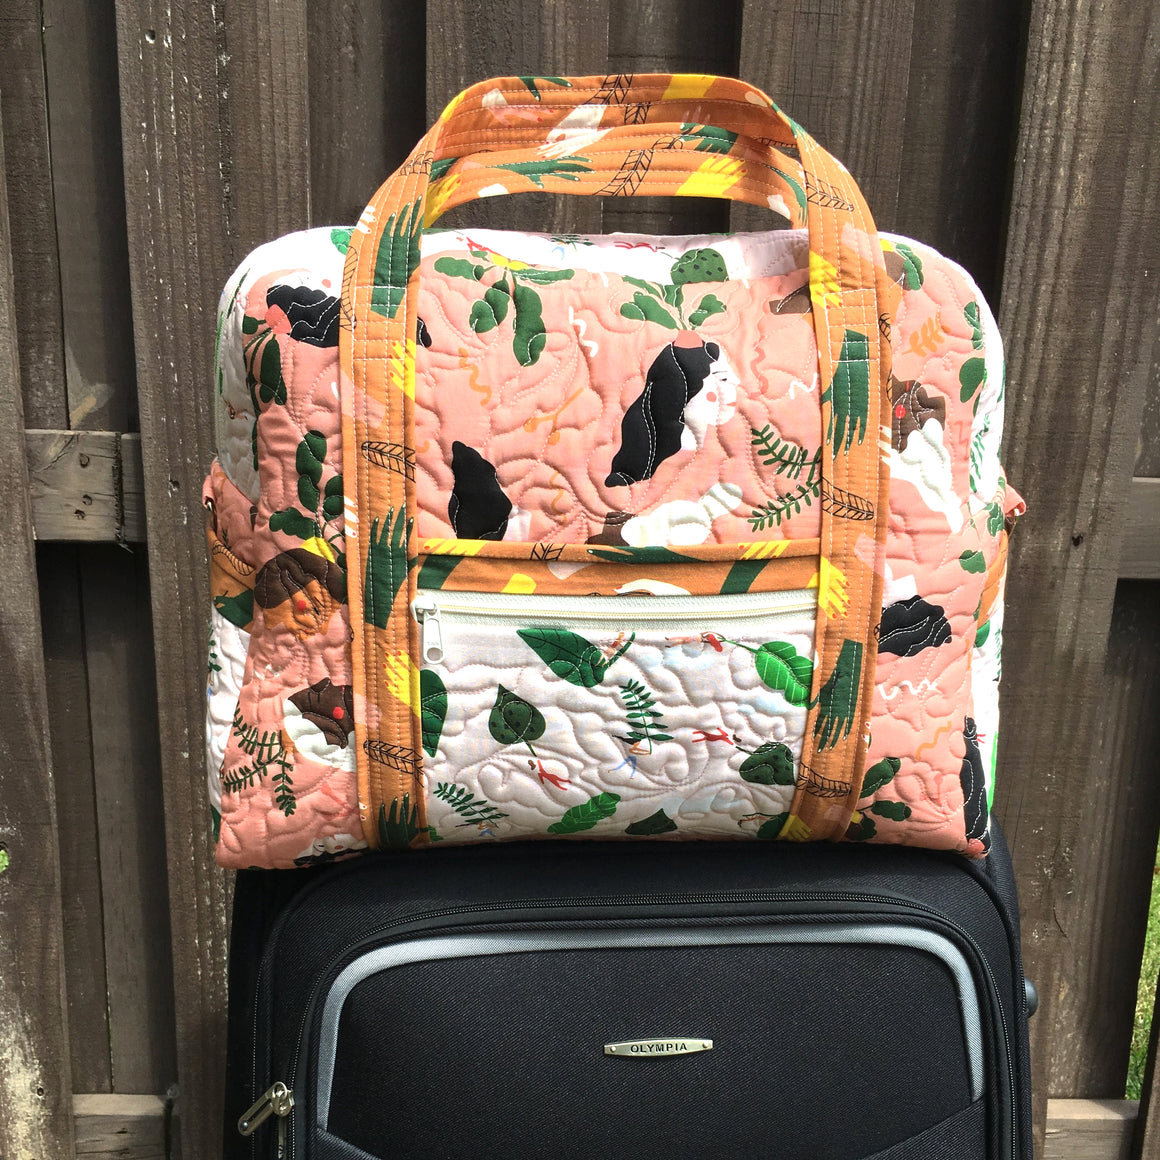 The Ultimate Travel Bag pattern